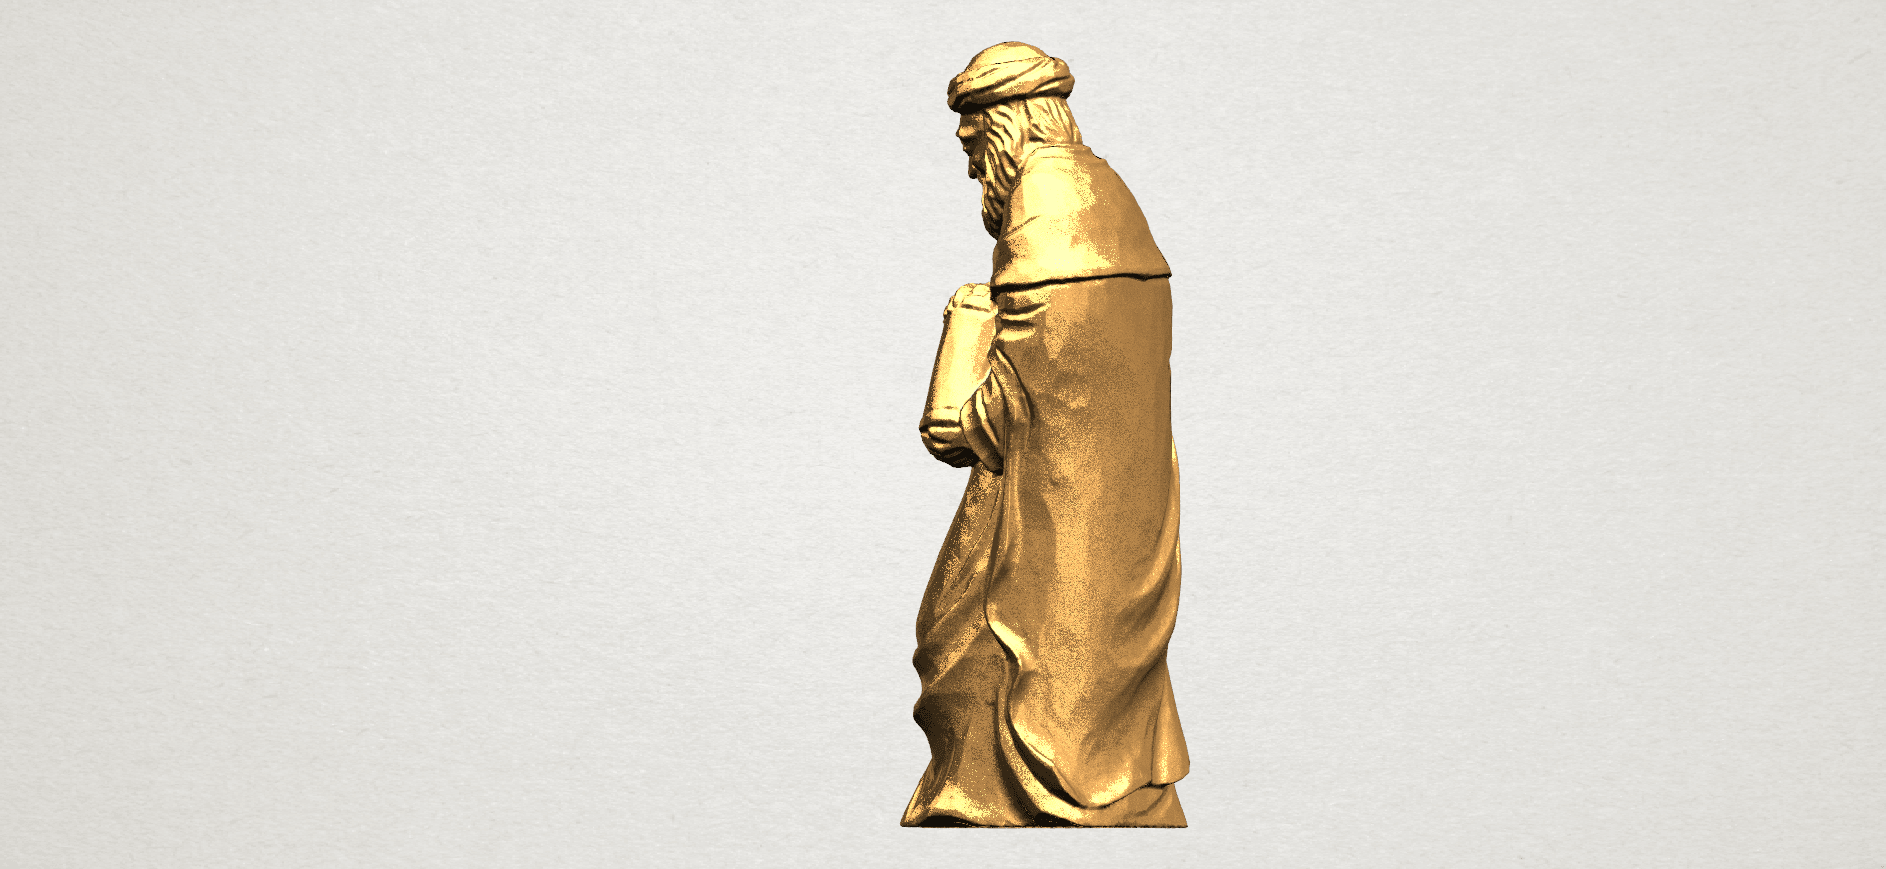 Sculpture of Arabian 88mm - A03.png Download free STL file Sculpture of Arabian • 3D print template, GeorgesNikkei